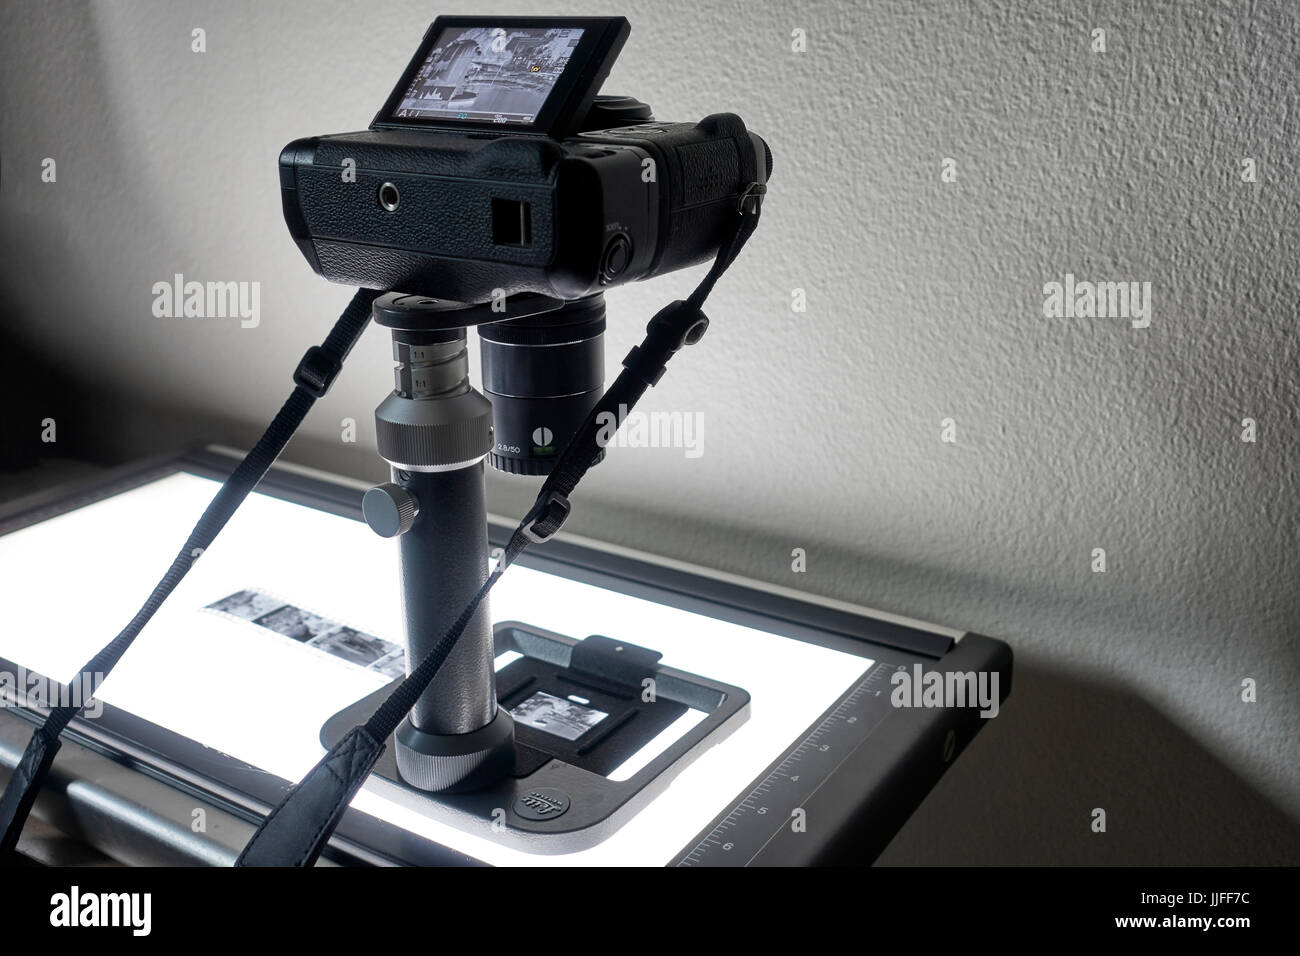 Film copying and digitizing rig. Leica Beoon and digital camera used to digitise photography film. Film scanner, - Stock Image